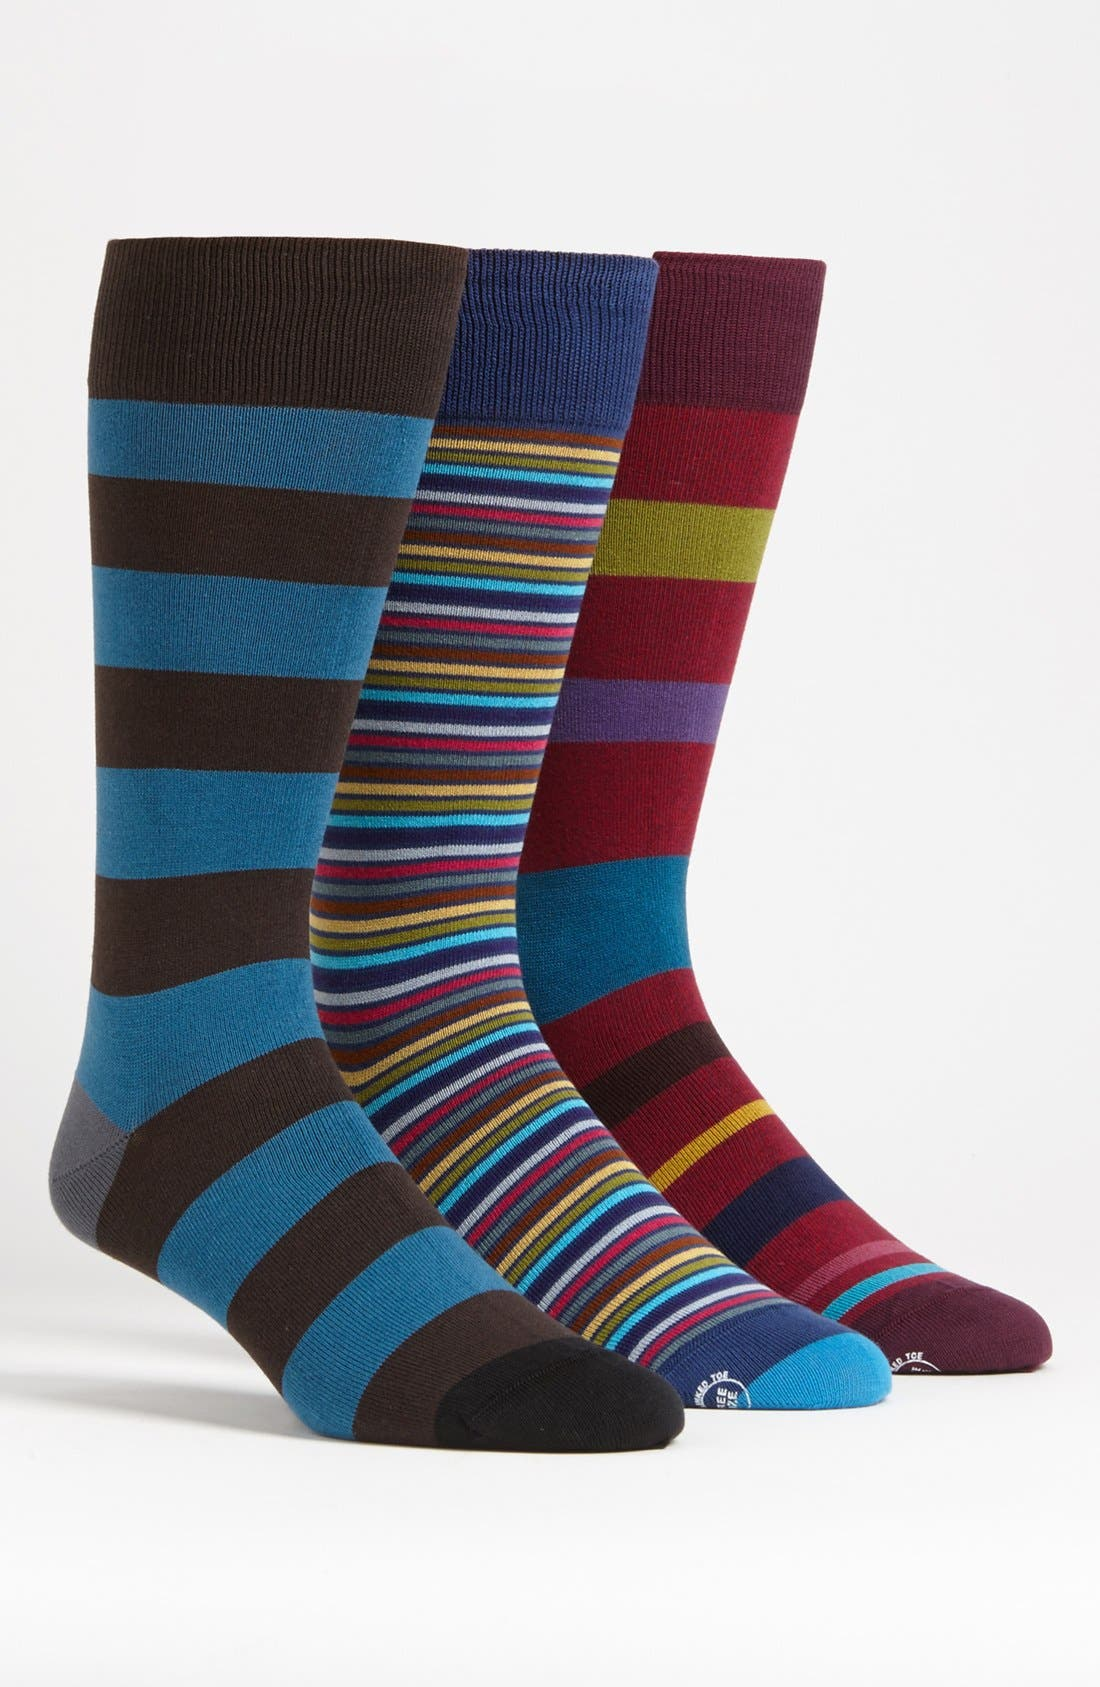 Alternate Image 1 Selected - Paul Smith Accessories Socks (3-Pack)